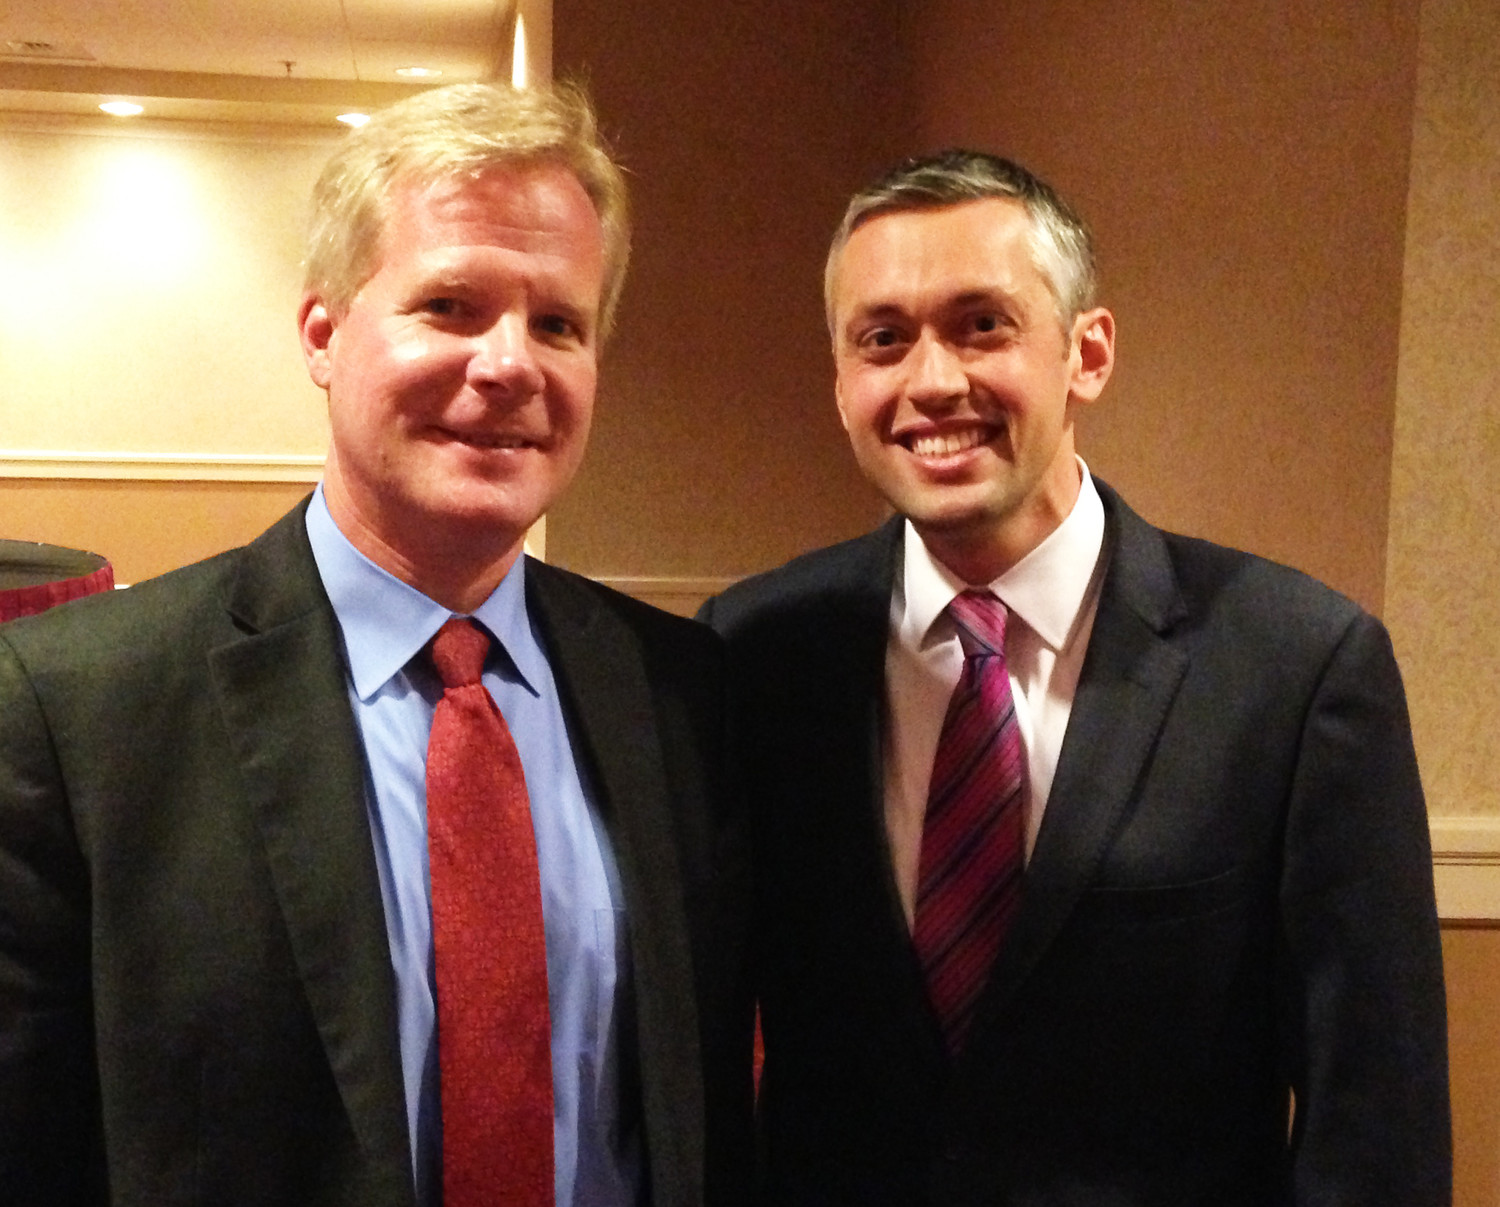 James Nyberg, left, director of Leading Age RI, and Ted Nesi, WPRI-TV, who was the keynote speaker at the 13th annual policy summer hosted by Leading Age RI.